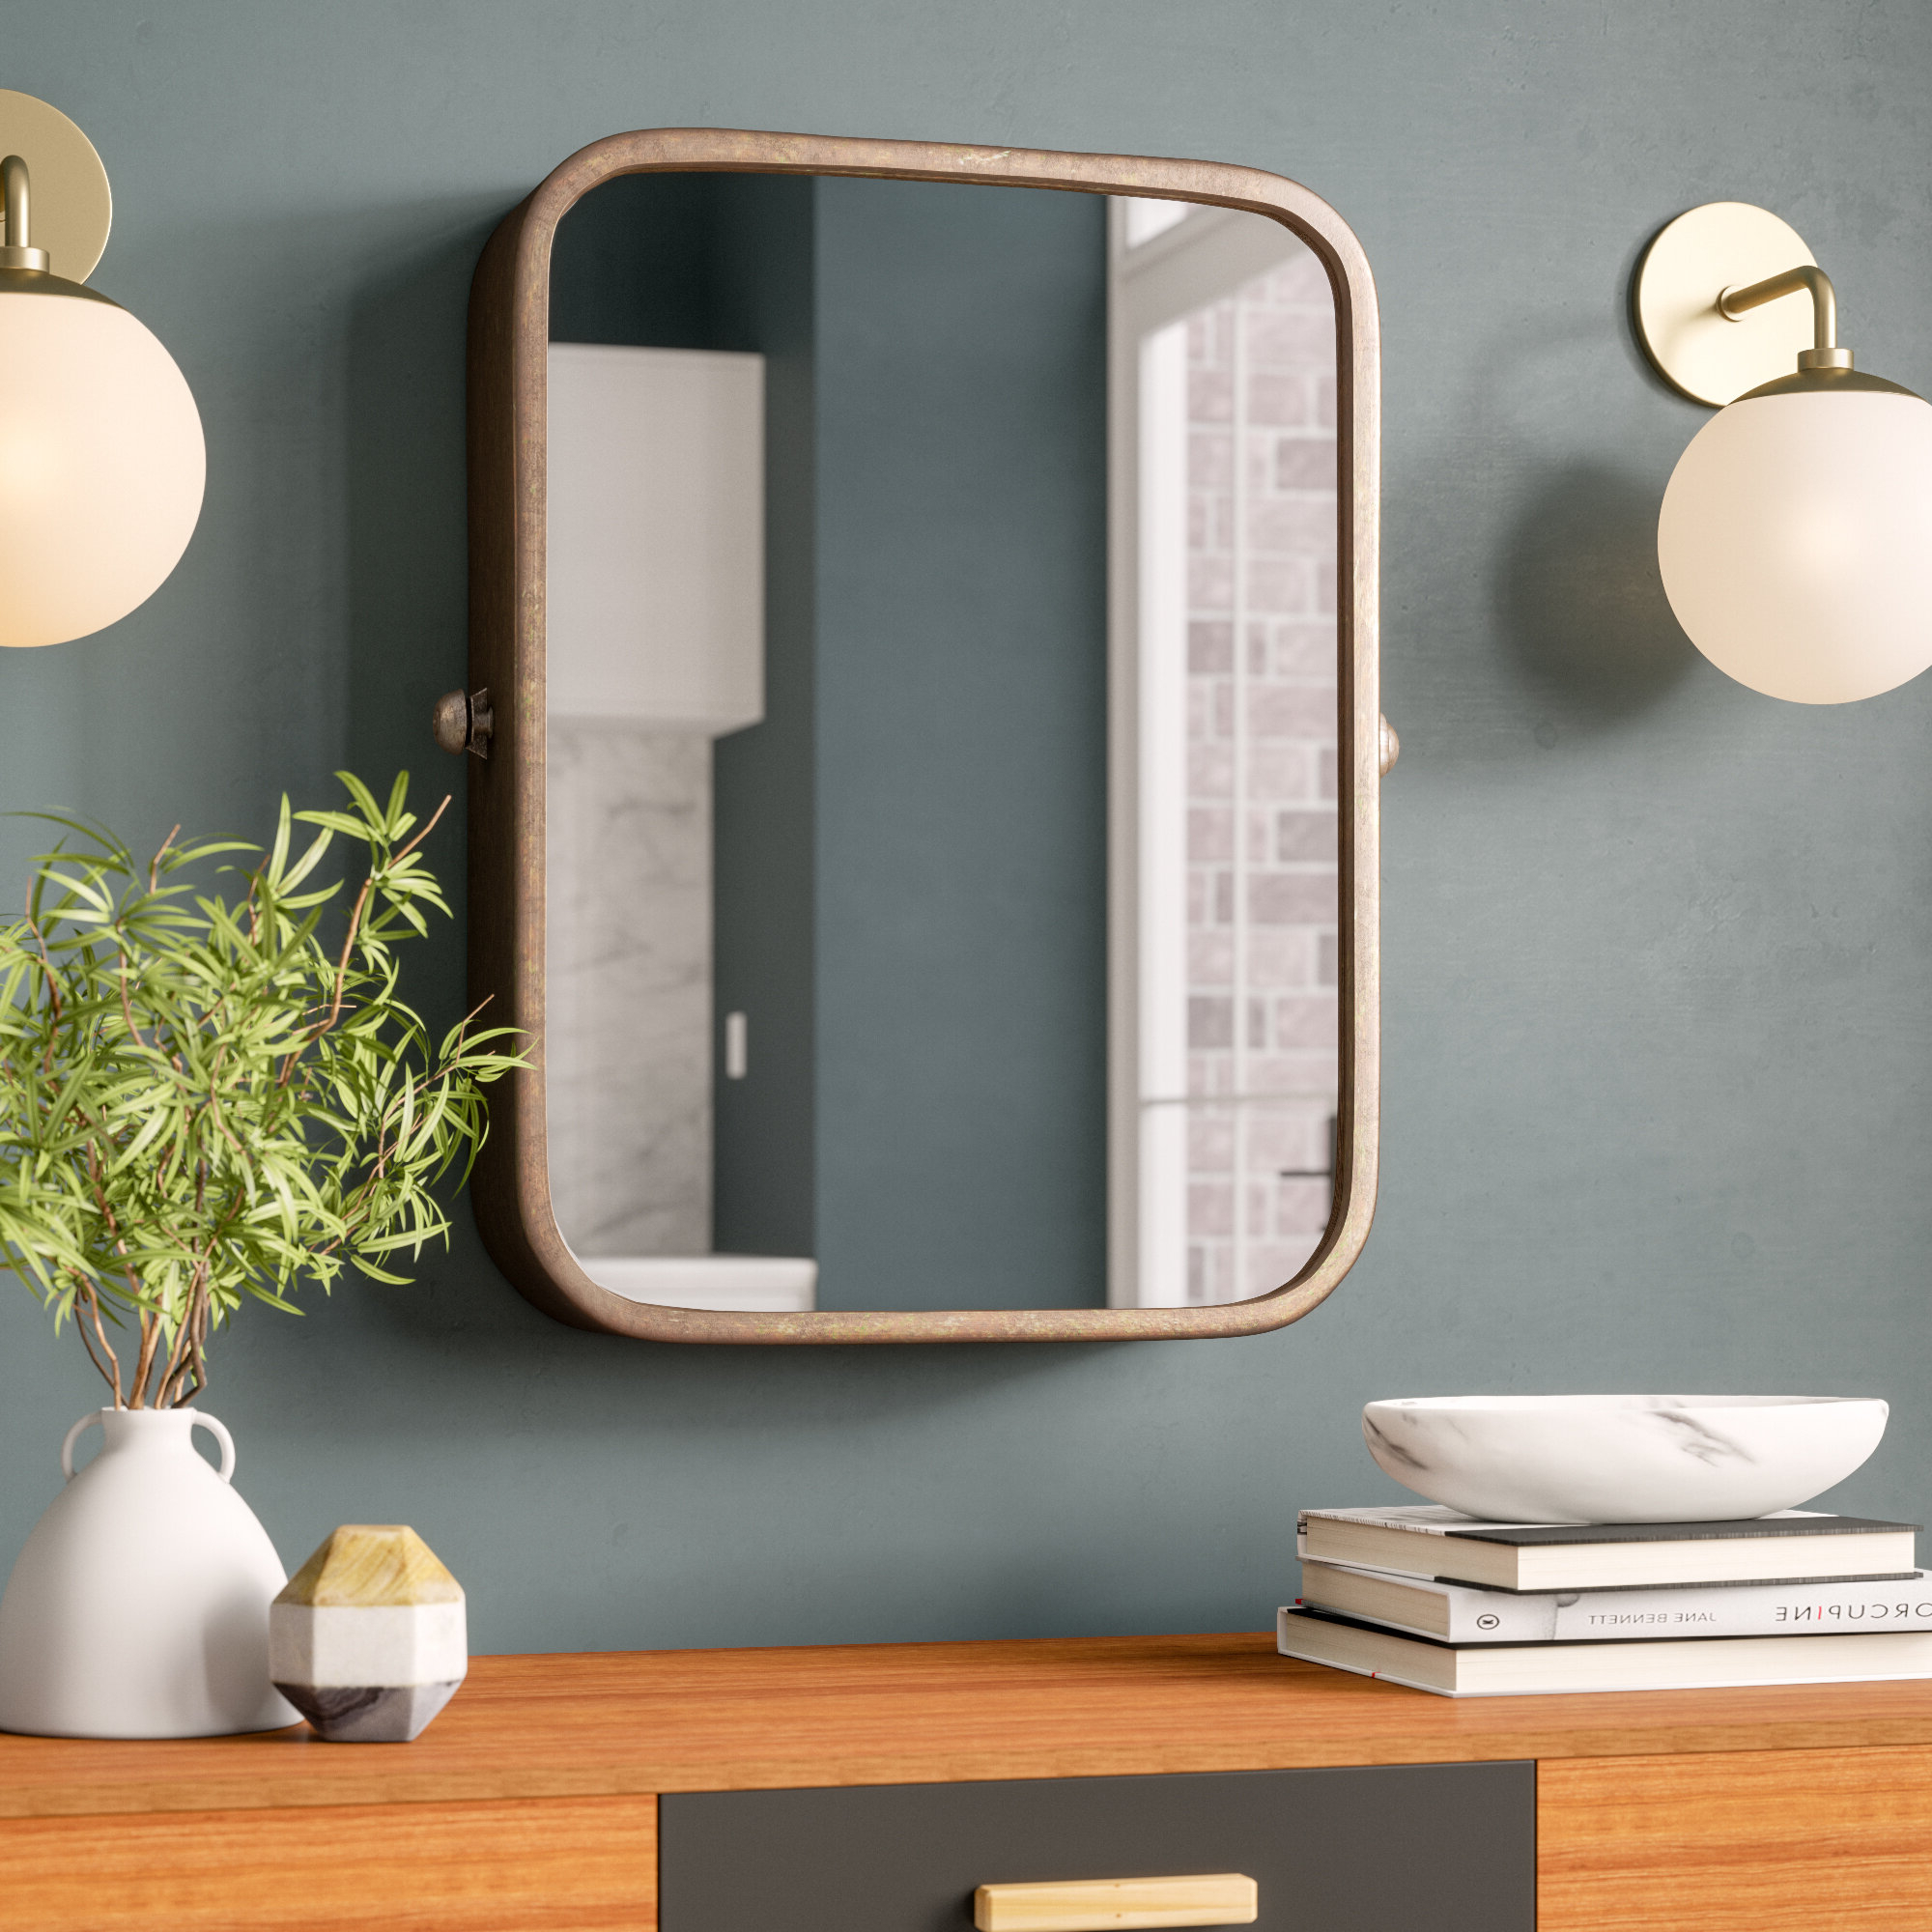 Lavendon And Hanging Wall Mirror Throughout Latest Hang Wall Mirrors (View 9 of 20)